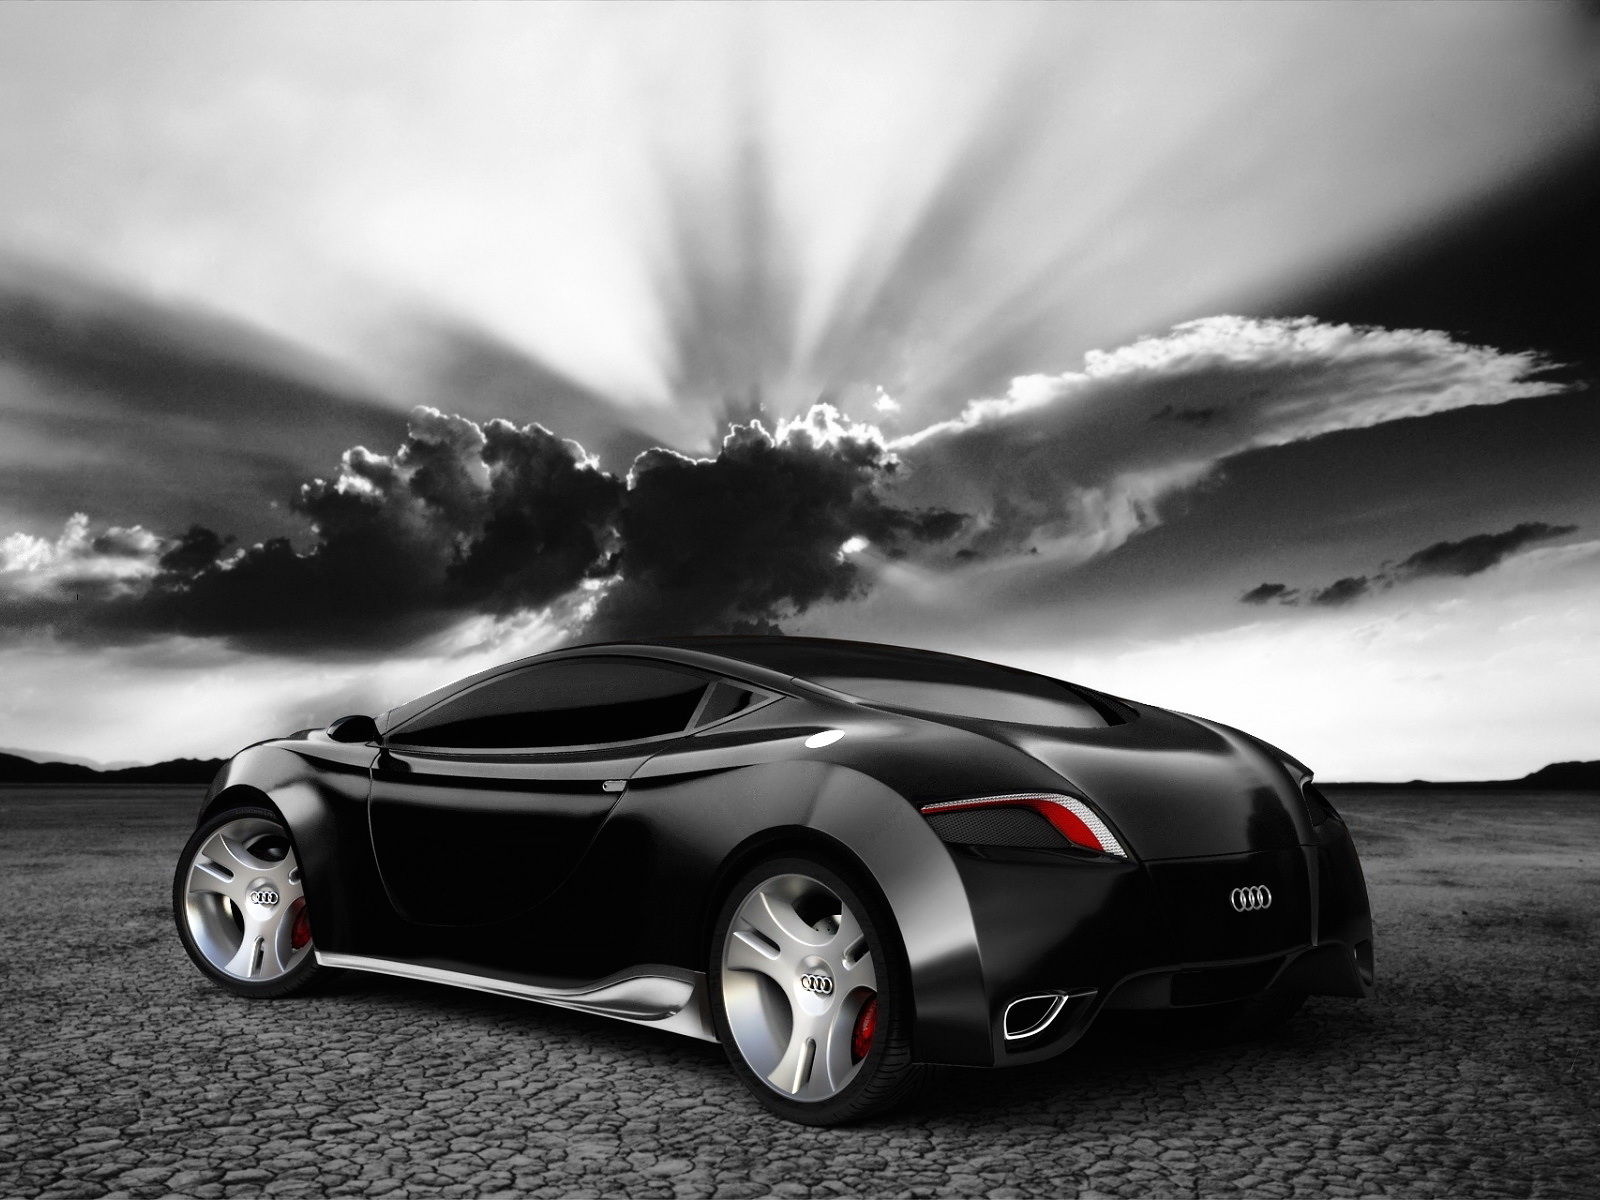 Car Wallpapers HD Download Wallpaper DaWallpaperz 1600x1200